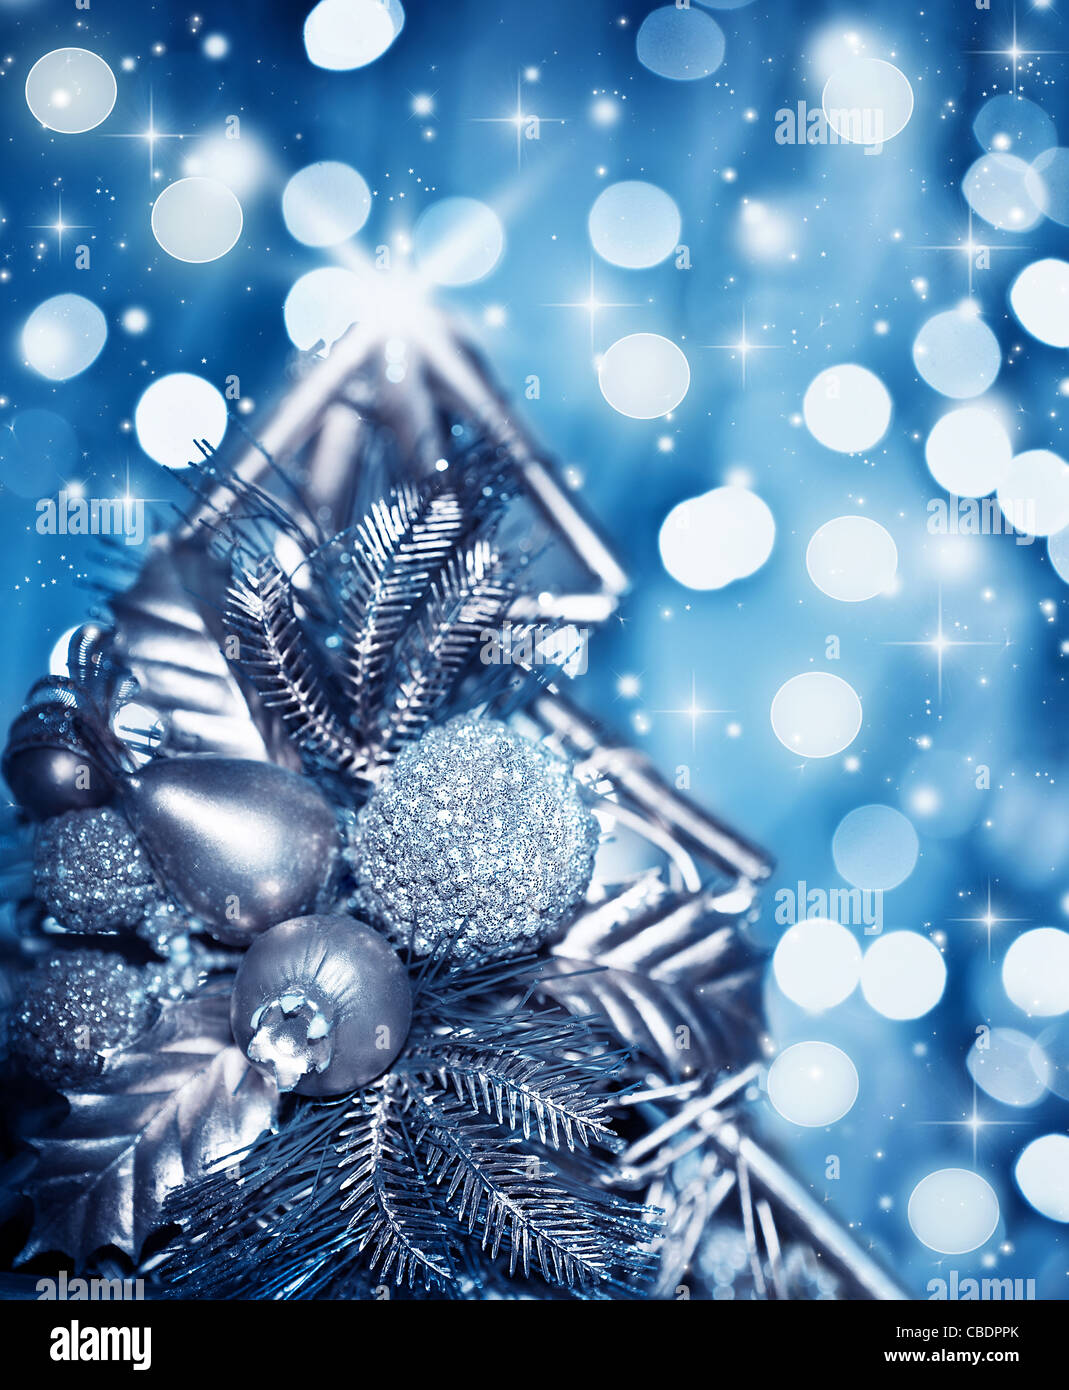 Beautiful silver Christmas tree decoration, blue shiny holiday background with blur bokeh glowing light and glitters Stock Photo